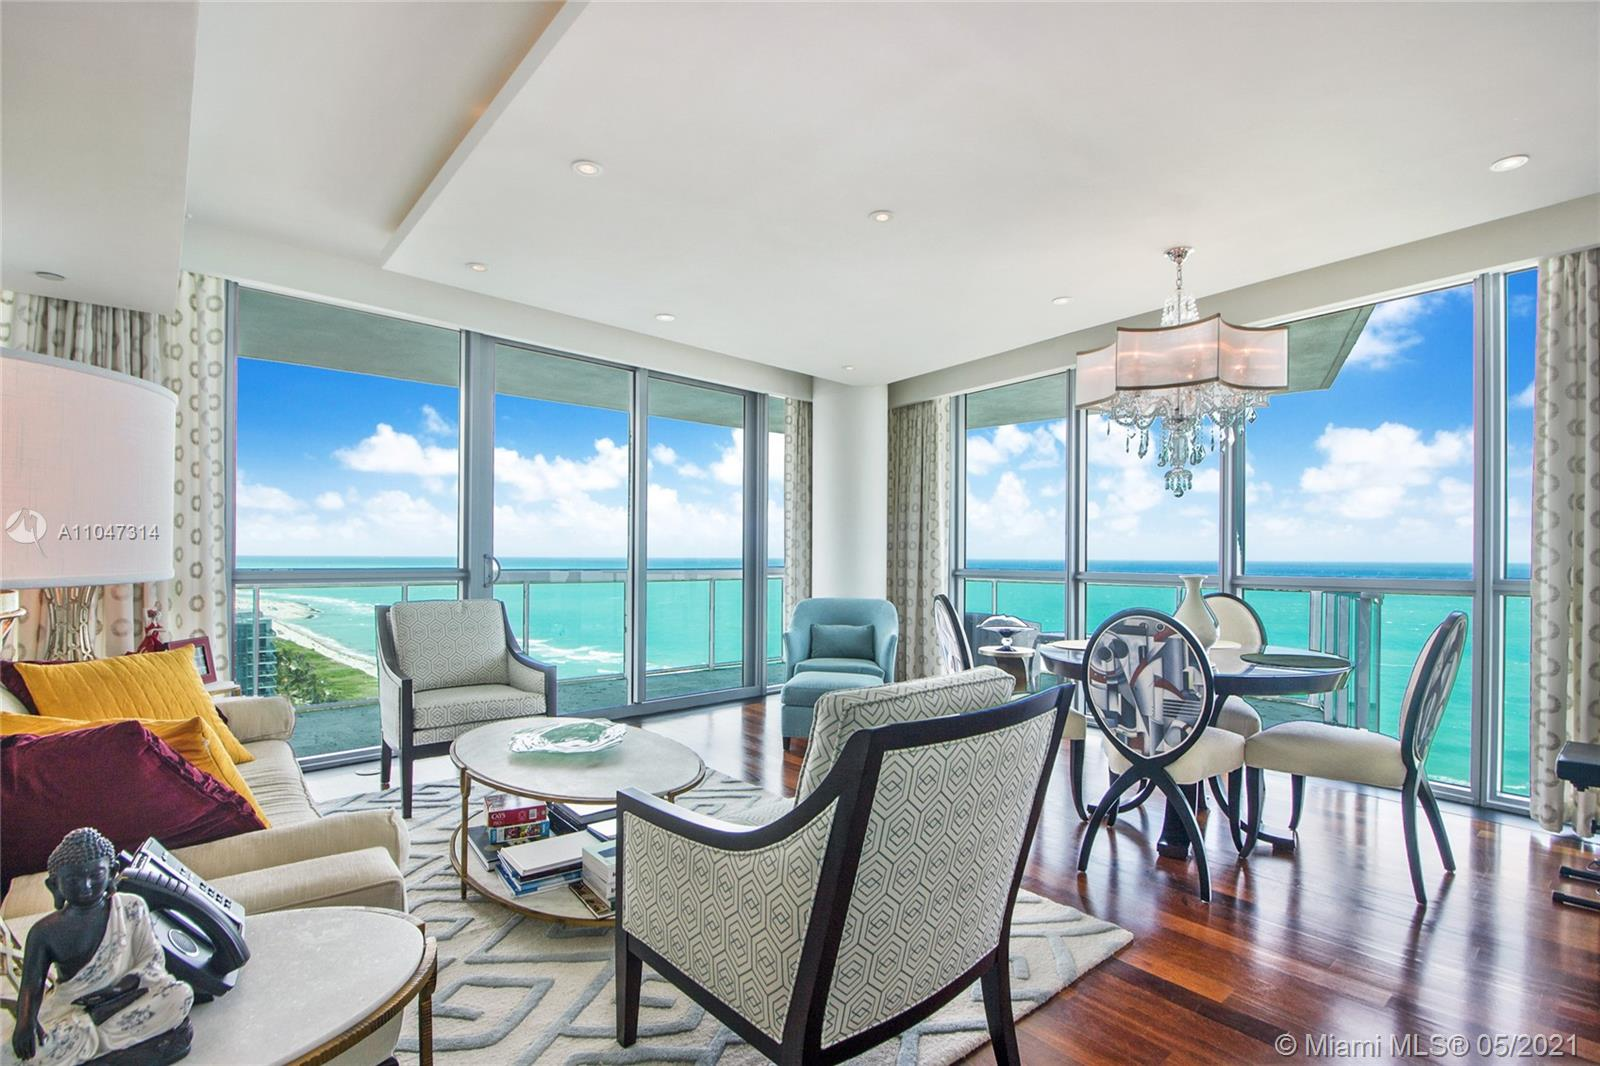 Corner oceanfront 2 bed 2 Bath at 5 Star Setai South Beach. This special unit in Setai has incredible views from every room in the apartment.  Additionally, the unit as an expansive balcony with views of the ocean and the intercoastal going north.  This property is high enough that it is taller than the W giving you spectacular views in every direction.  The Setai is the only 5-Star property on Miami beach with amenities including 3 infinity pools, spa, beach, and two world class restaurants.  Additionally, all residents can enjoy full beach and pool service.